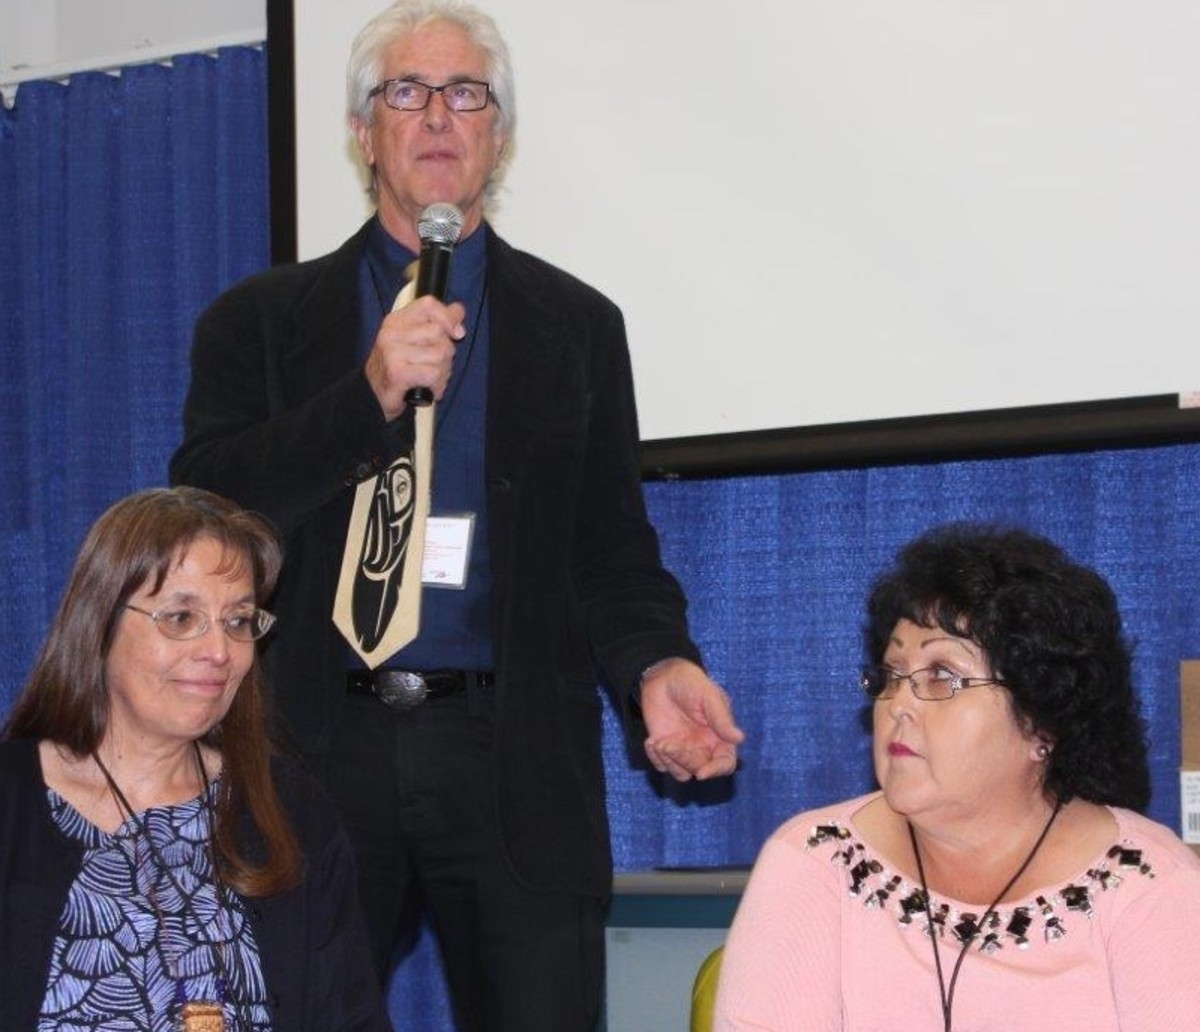 """""""Who Belongs?"""" conference organizer Robert Hershey introduces panelists at a tribal leaders Forum about tribal disenrollment. Chairwoman Carol Evans, Spokane Tribe of Indians, is on the left, and President Bernadine Burnette, Fort McDowell Yavapai Nation, is on the right."""